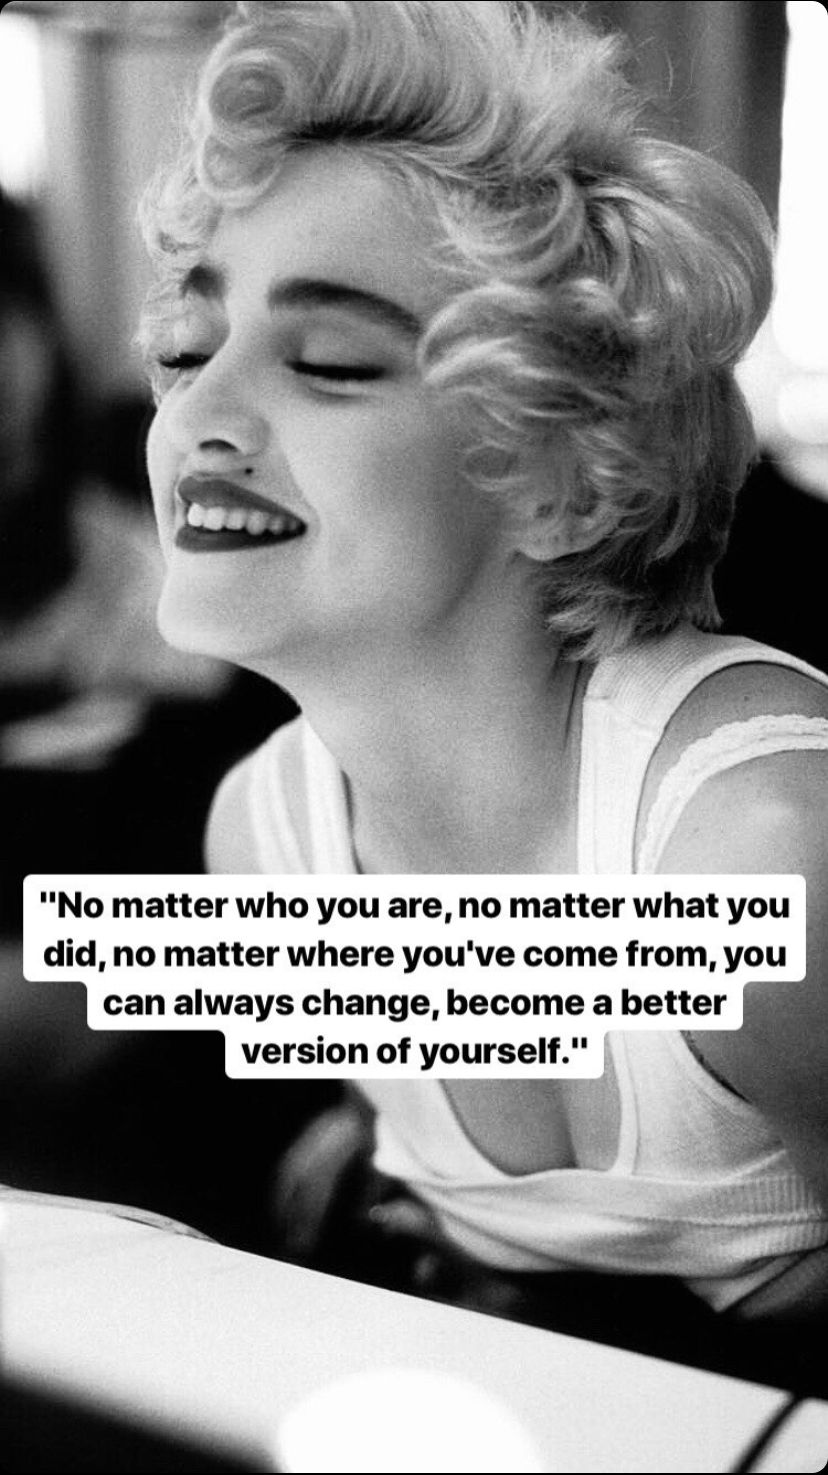 """No matter who you are, no matter what you did, no matter where you've came from, you can always change, become a better version of yourself."" – Madonna [828×1475]"